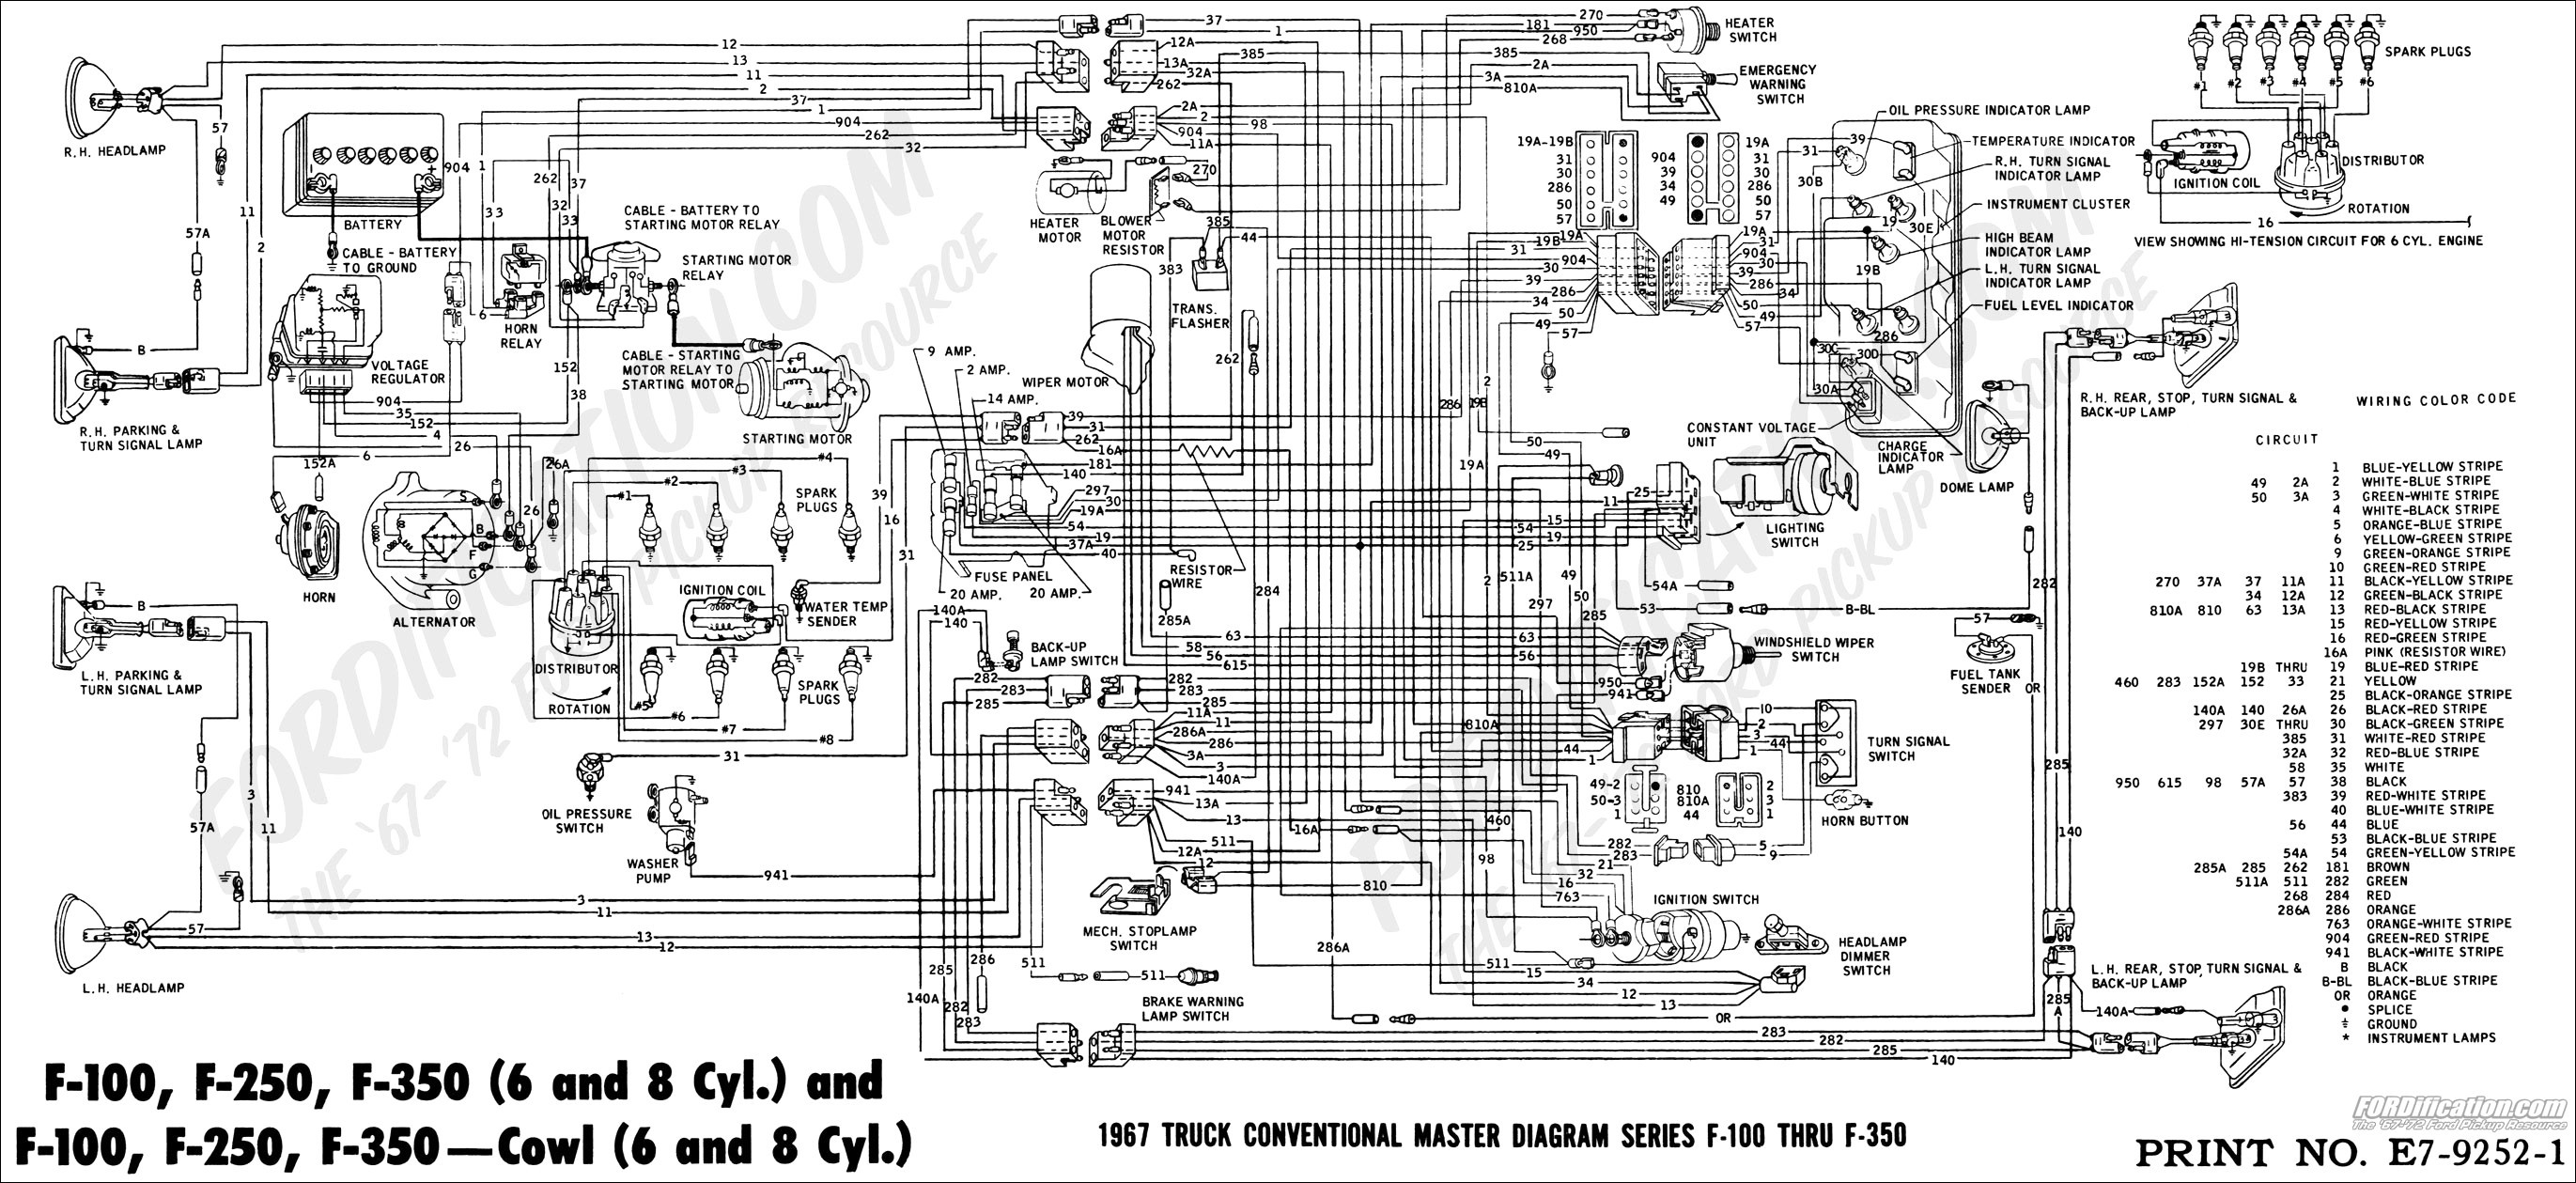 1988 ford alternator wiring diagram on 1976 ford f 150 truck wire rh daniablub co 1979 Ford Alternator Wiring Diagram Ford 1G Alternator Wiring Diagram